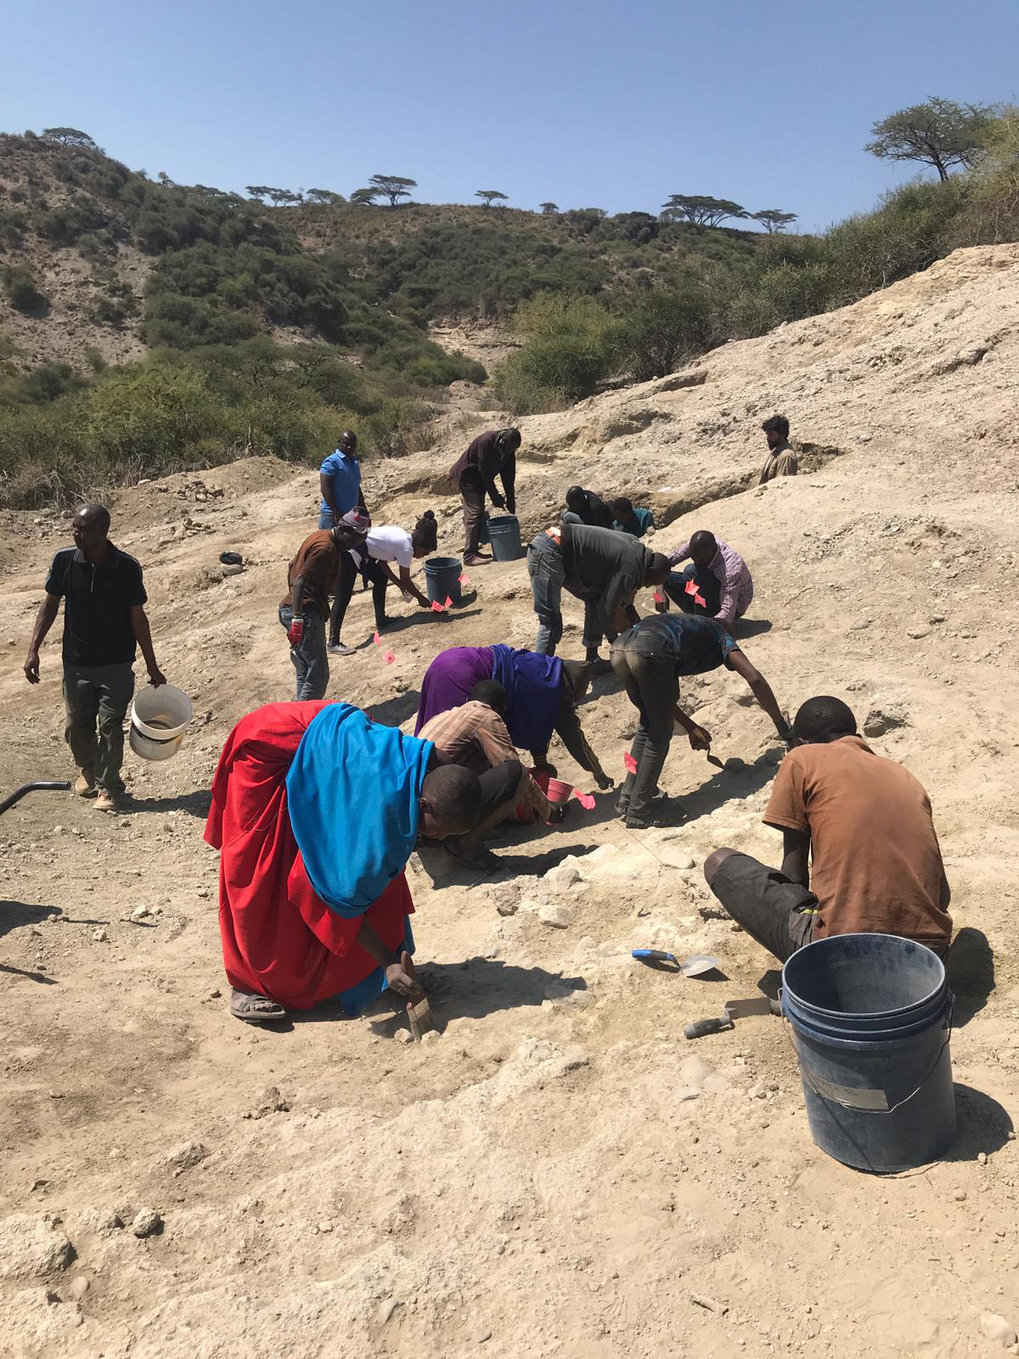 Excavations during the summer 2019 in the Western Oldupai Gorge, where many stone tools and faunal remains were recovered.